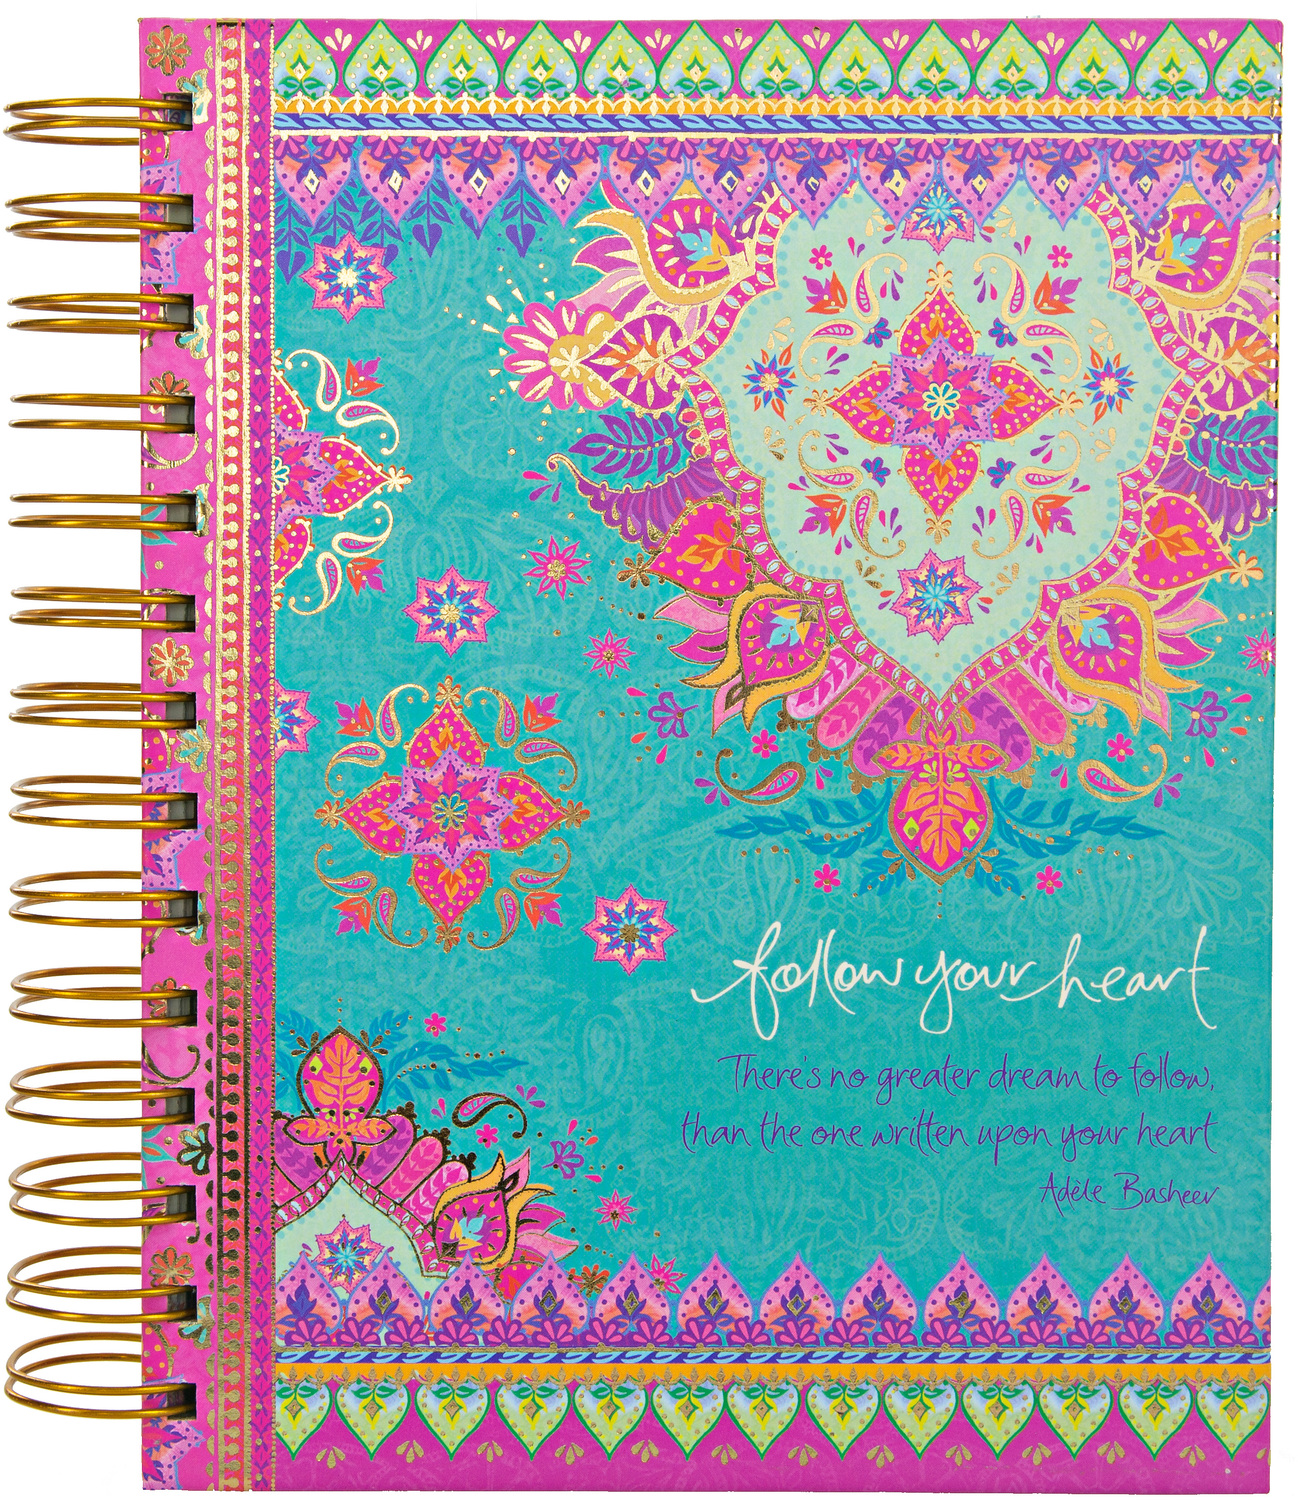 "Follow Your Heart by Intrinsic - Follow Your Heart - 7.5"" x 6.5"" Spiral Notebook"